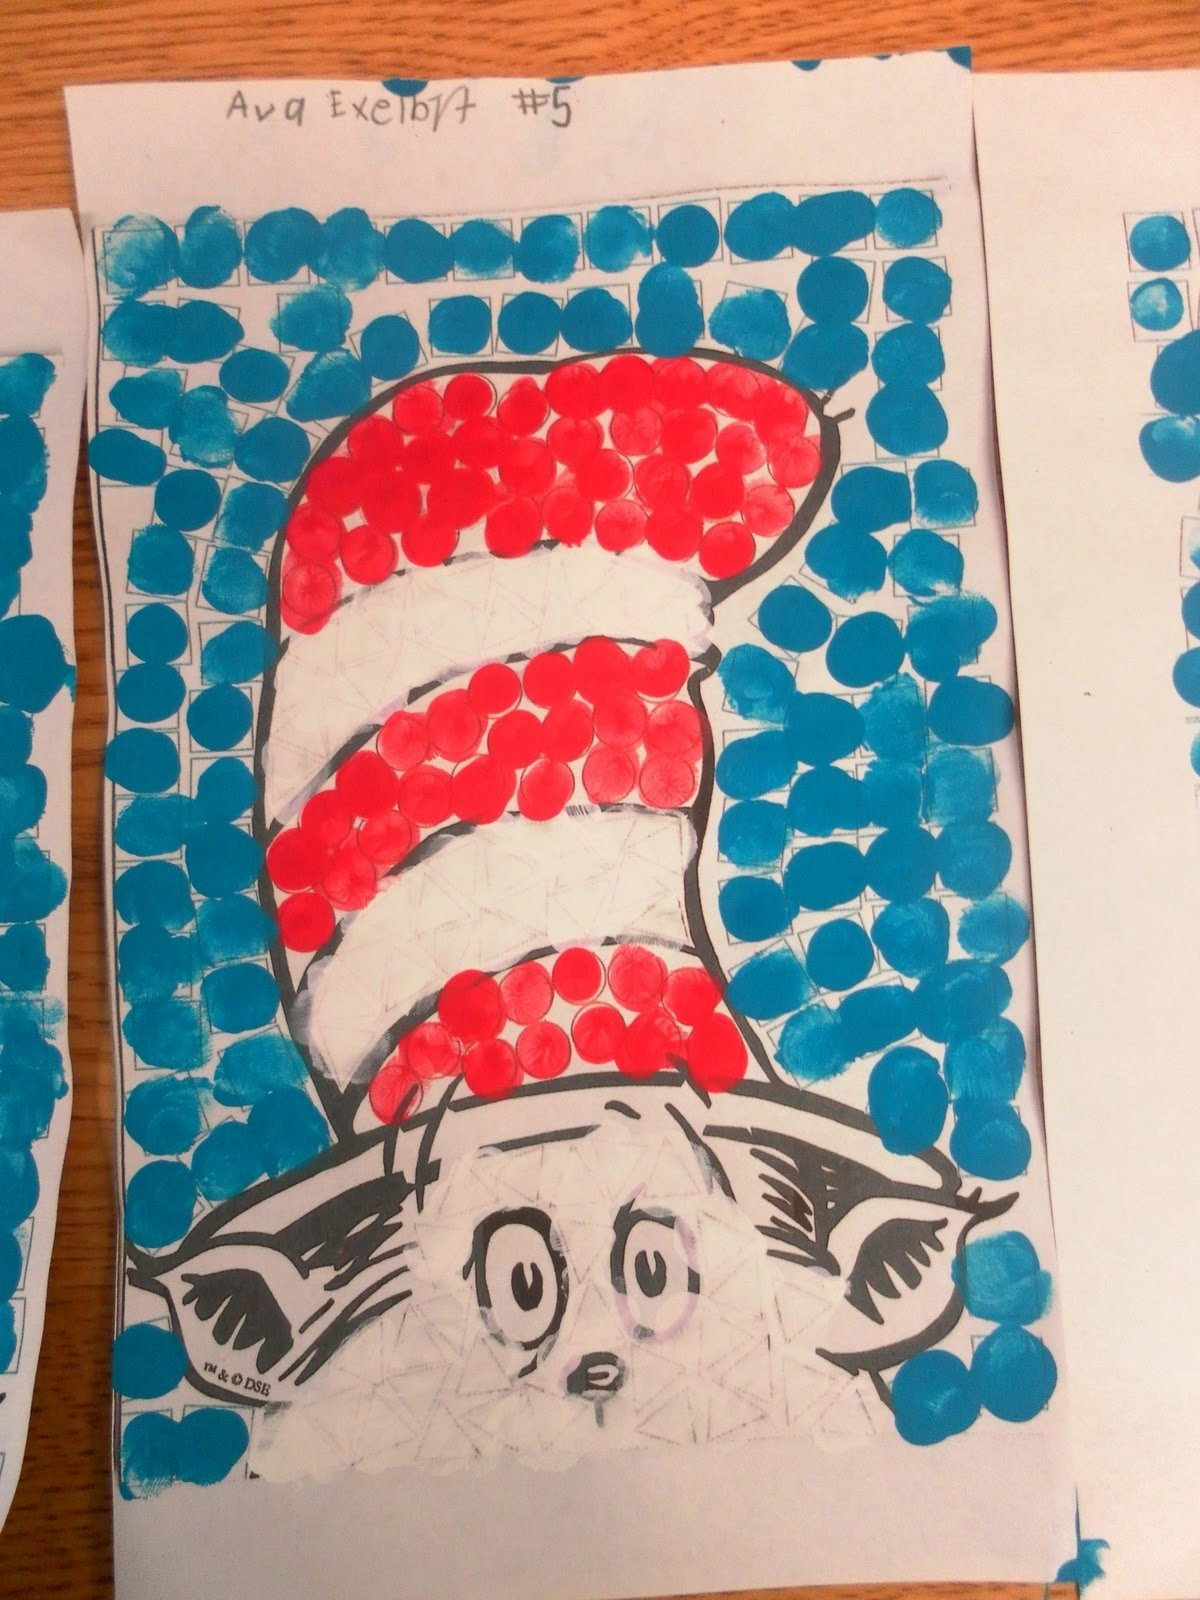 10 Most Popular Cat In The Hat Craft Ideas sam 0886 1 2020